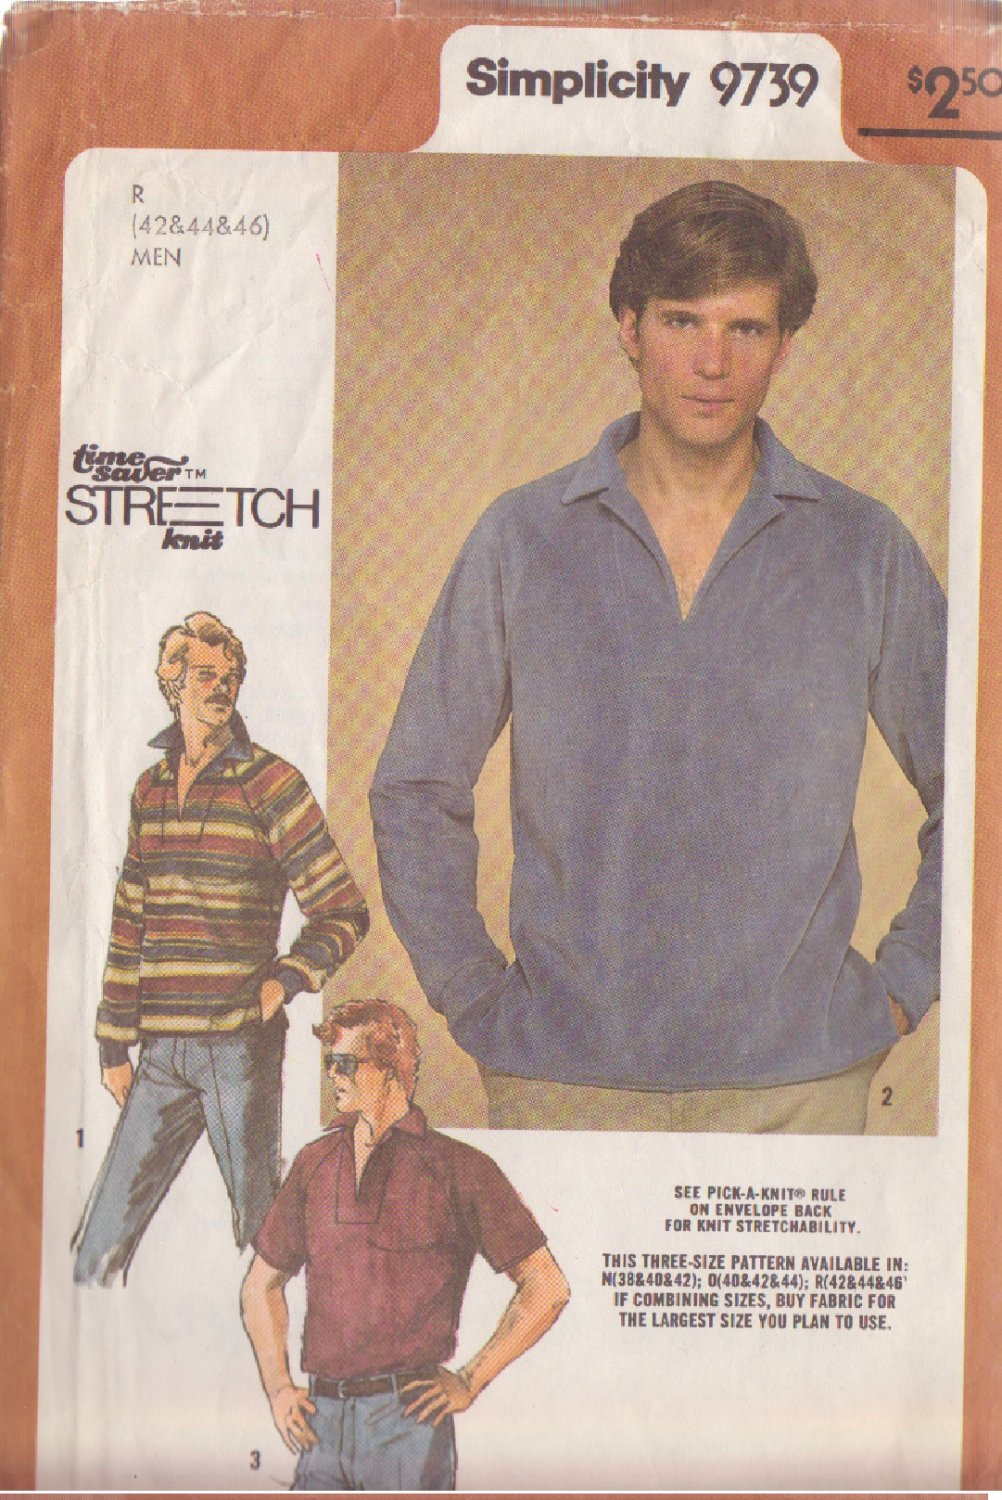 SIMPLICITY VINTAGE 1980 PATTERN 9739 SIZE 42/44/46 MEN'S PULLOVER SHIRT #3